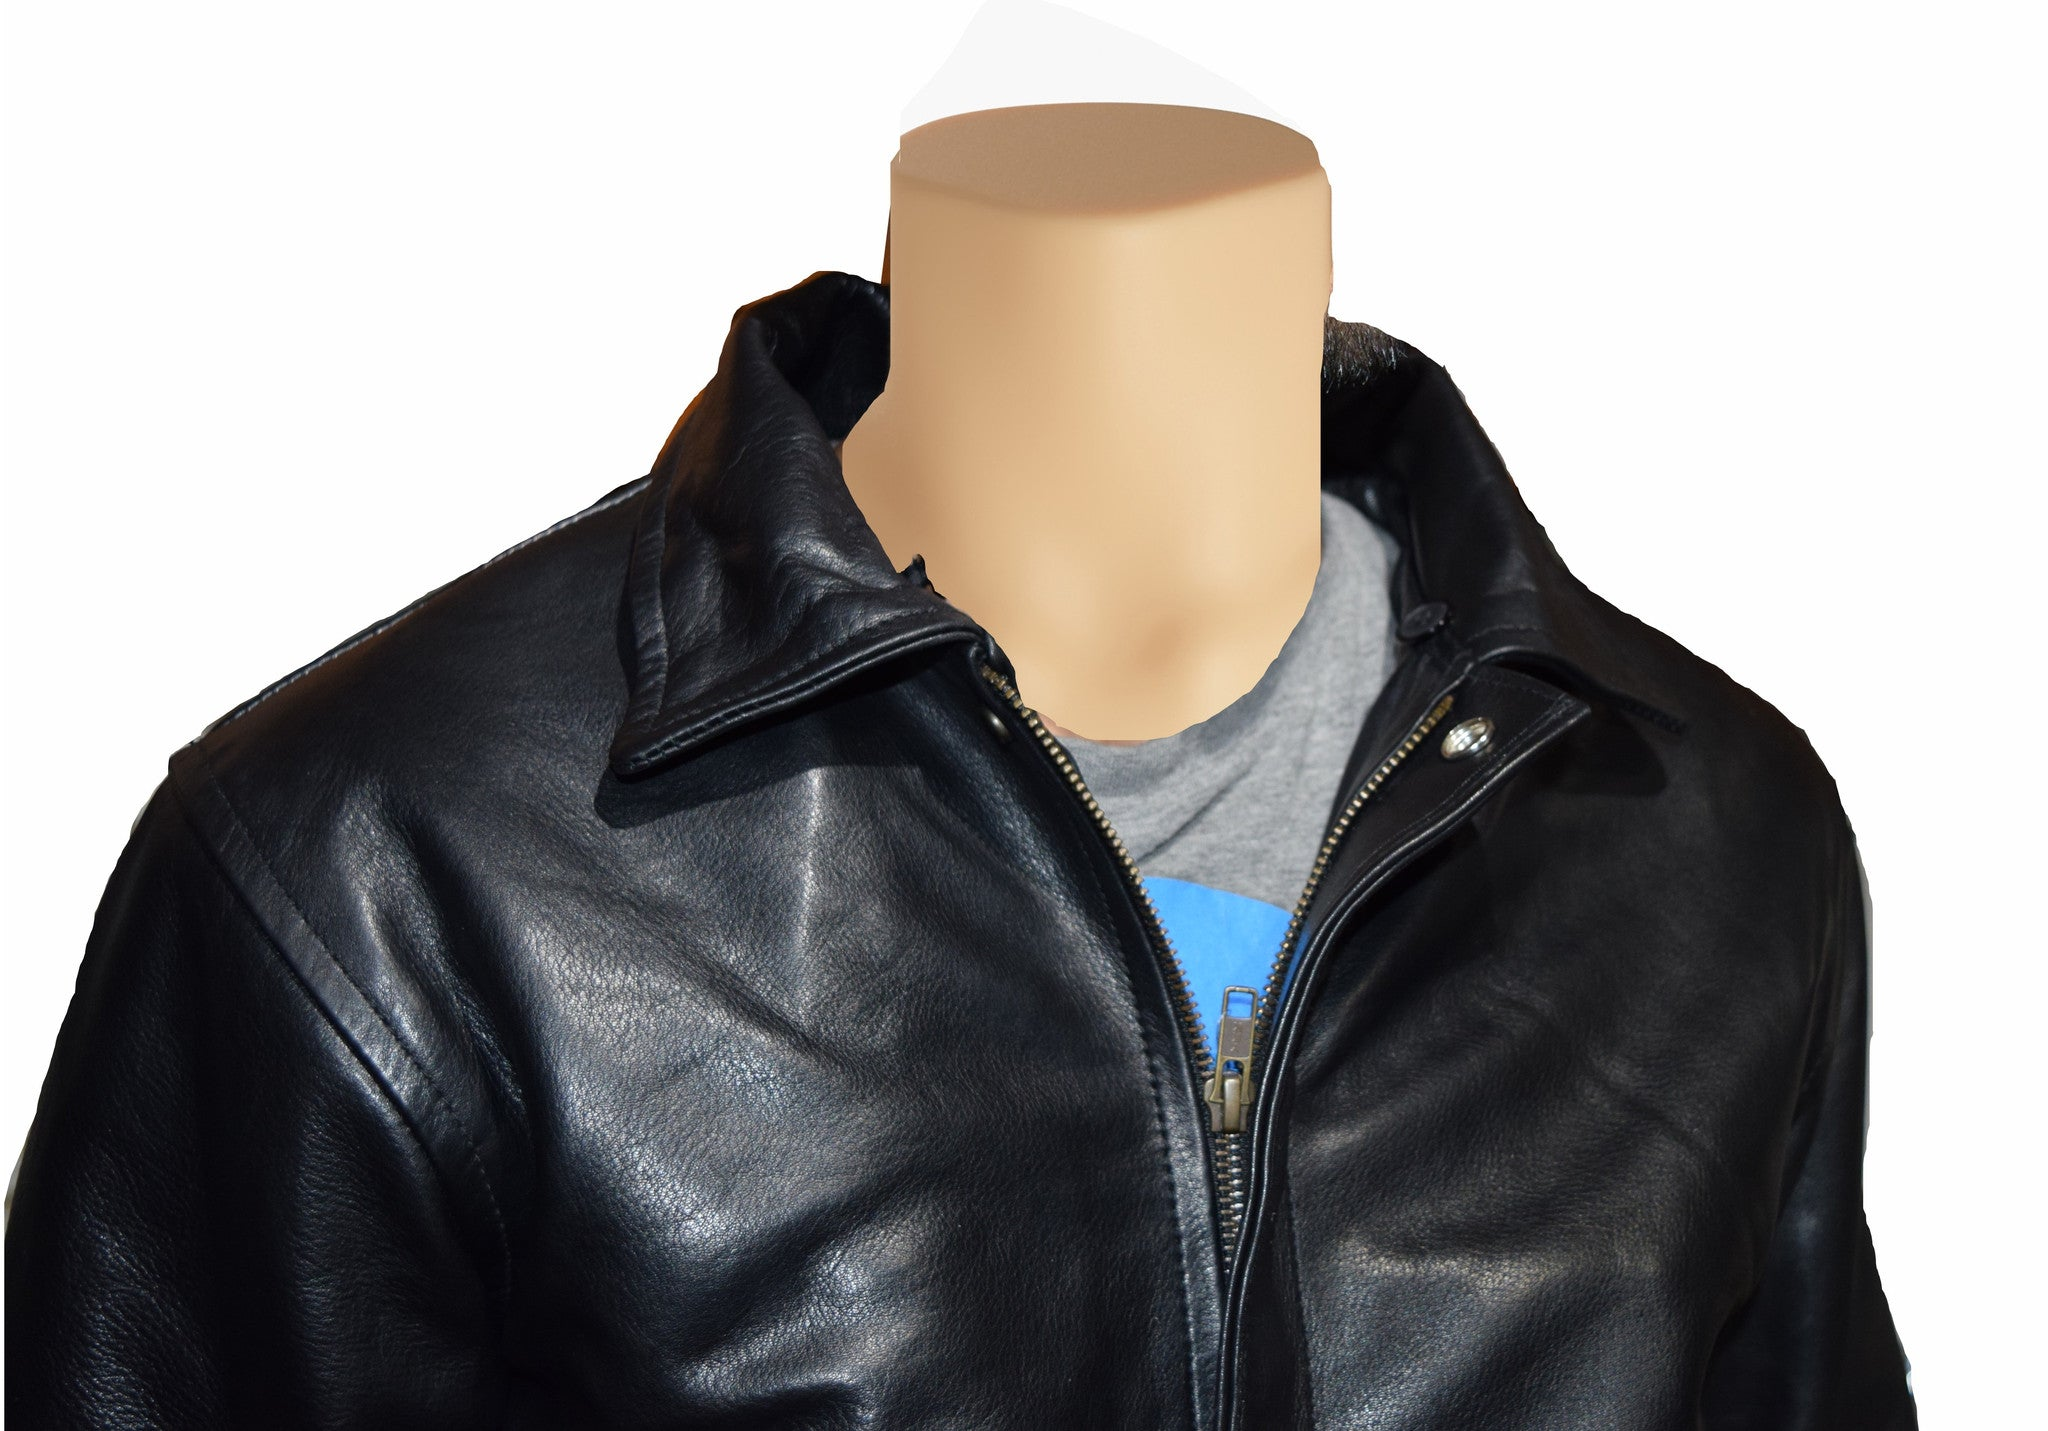 A2 Bomber Flight leather jacket